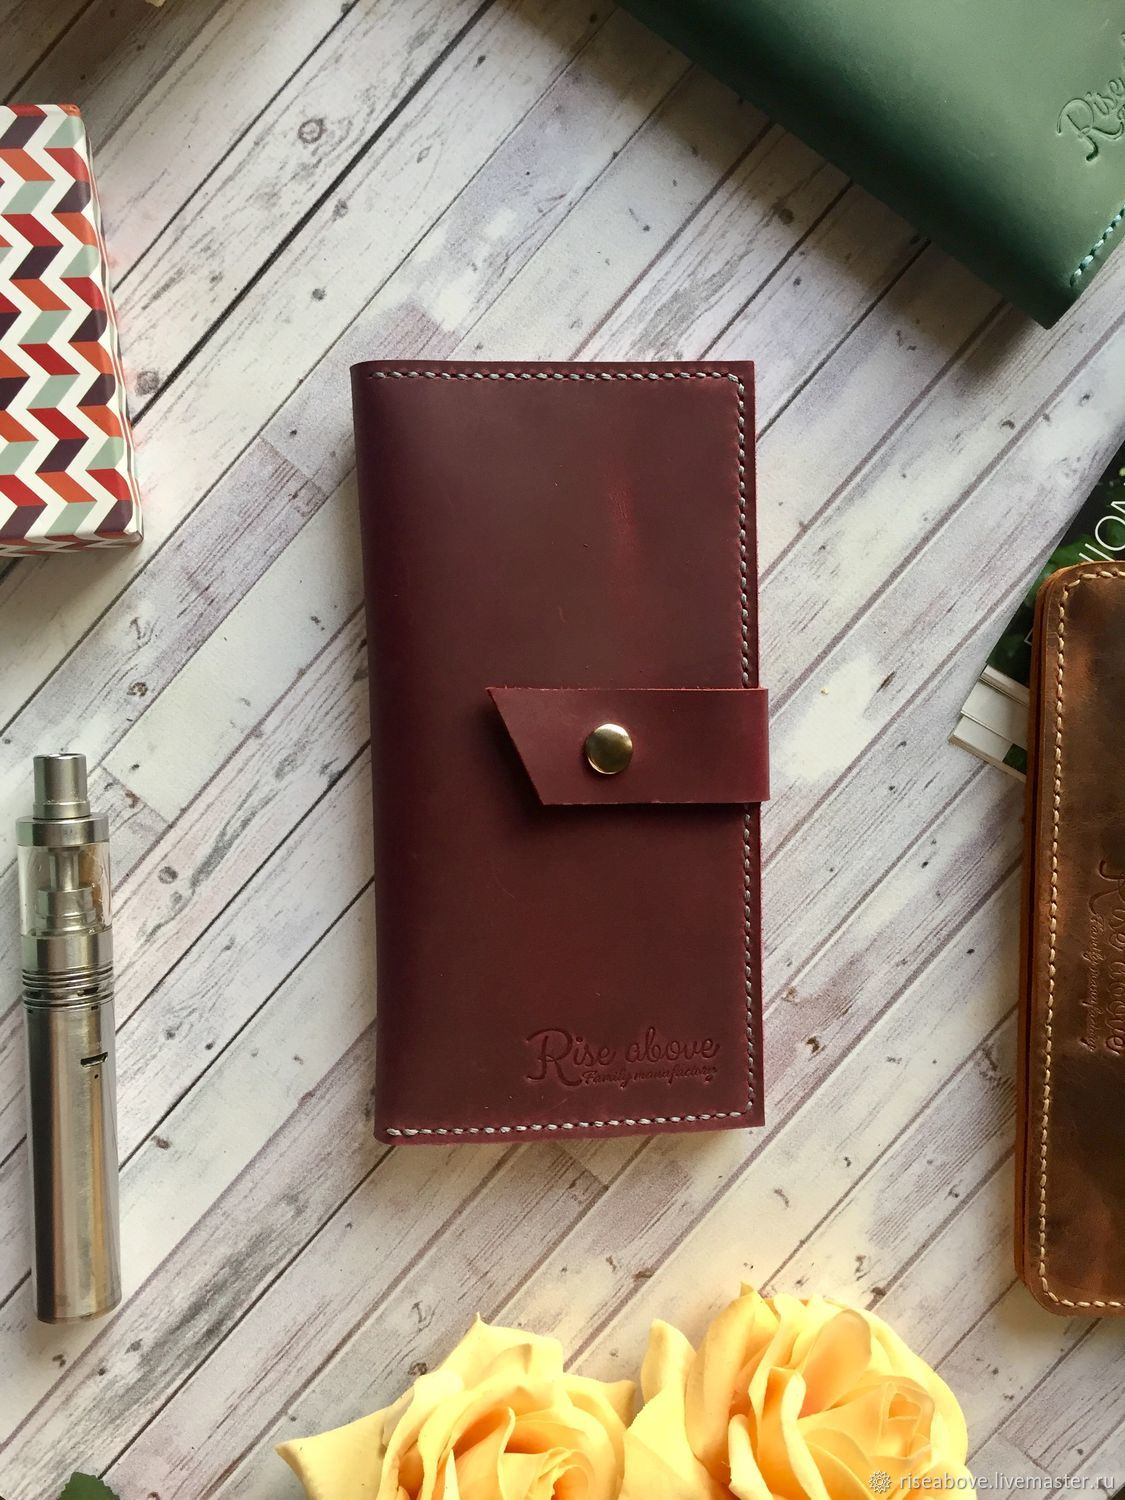 Wallet Amber Bordeaux Shop Online On Livemaster With Shipping